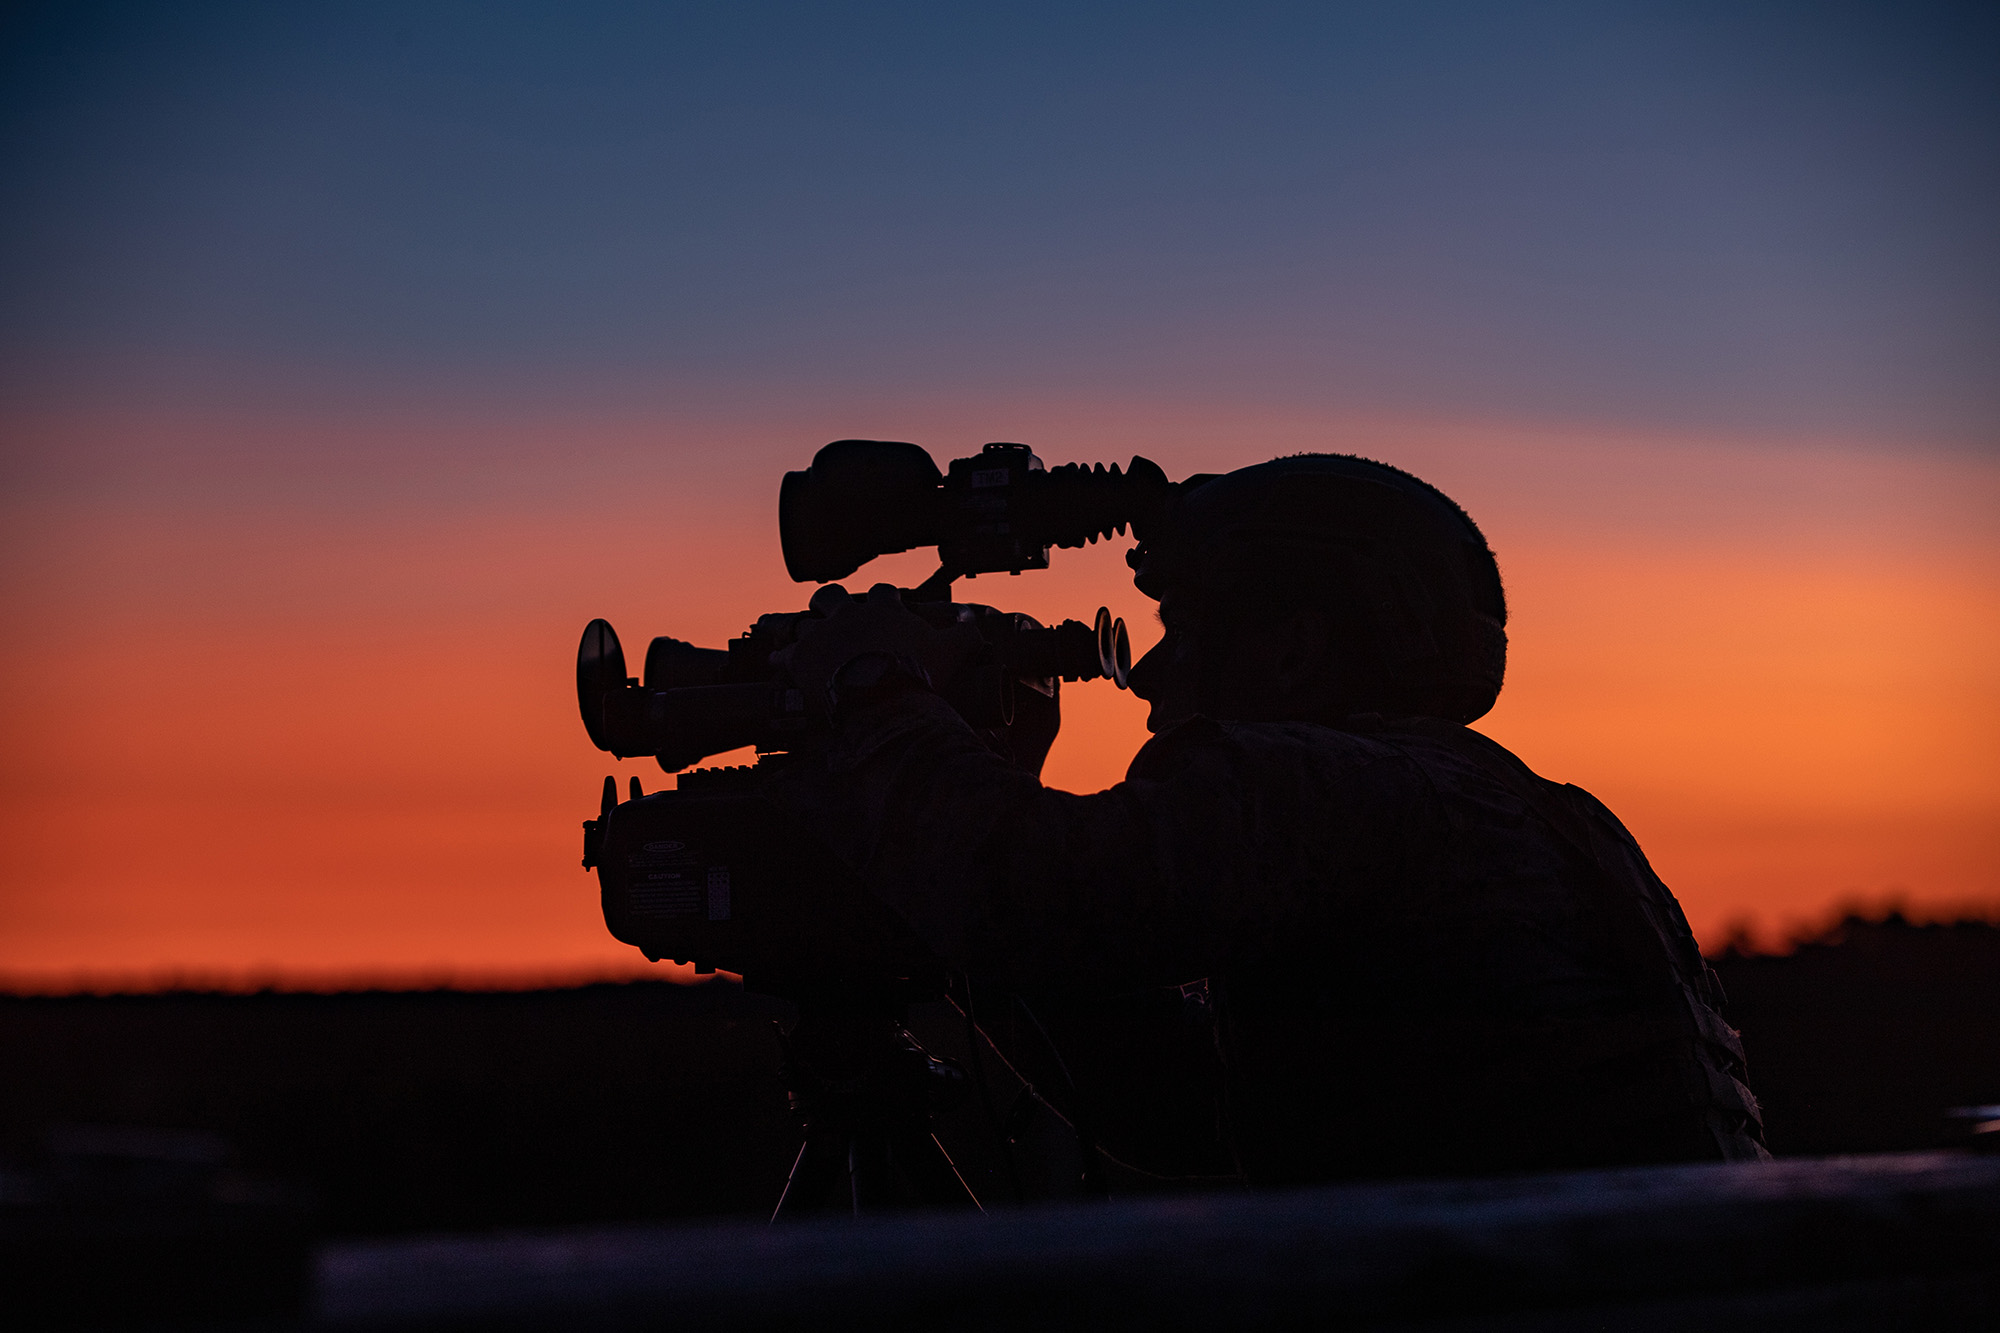 Marine Corps Staff Sgt. Brock Legant, an instructor at Scout Sniper Instructor School, rehearses his skills on night observation equipment during Tactical Air Control Party 1-21 on Camp Lejeune, N.C., Nov. 3, 2020. (Lance Cpl. Jacqueline Parsons/Marine Corps)